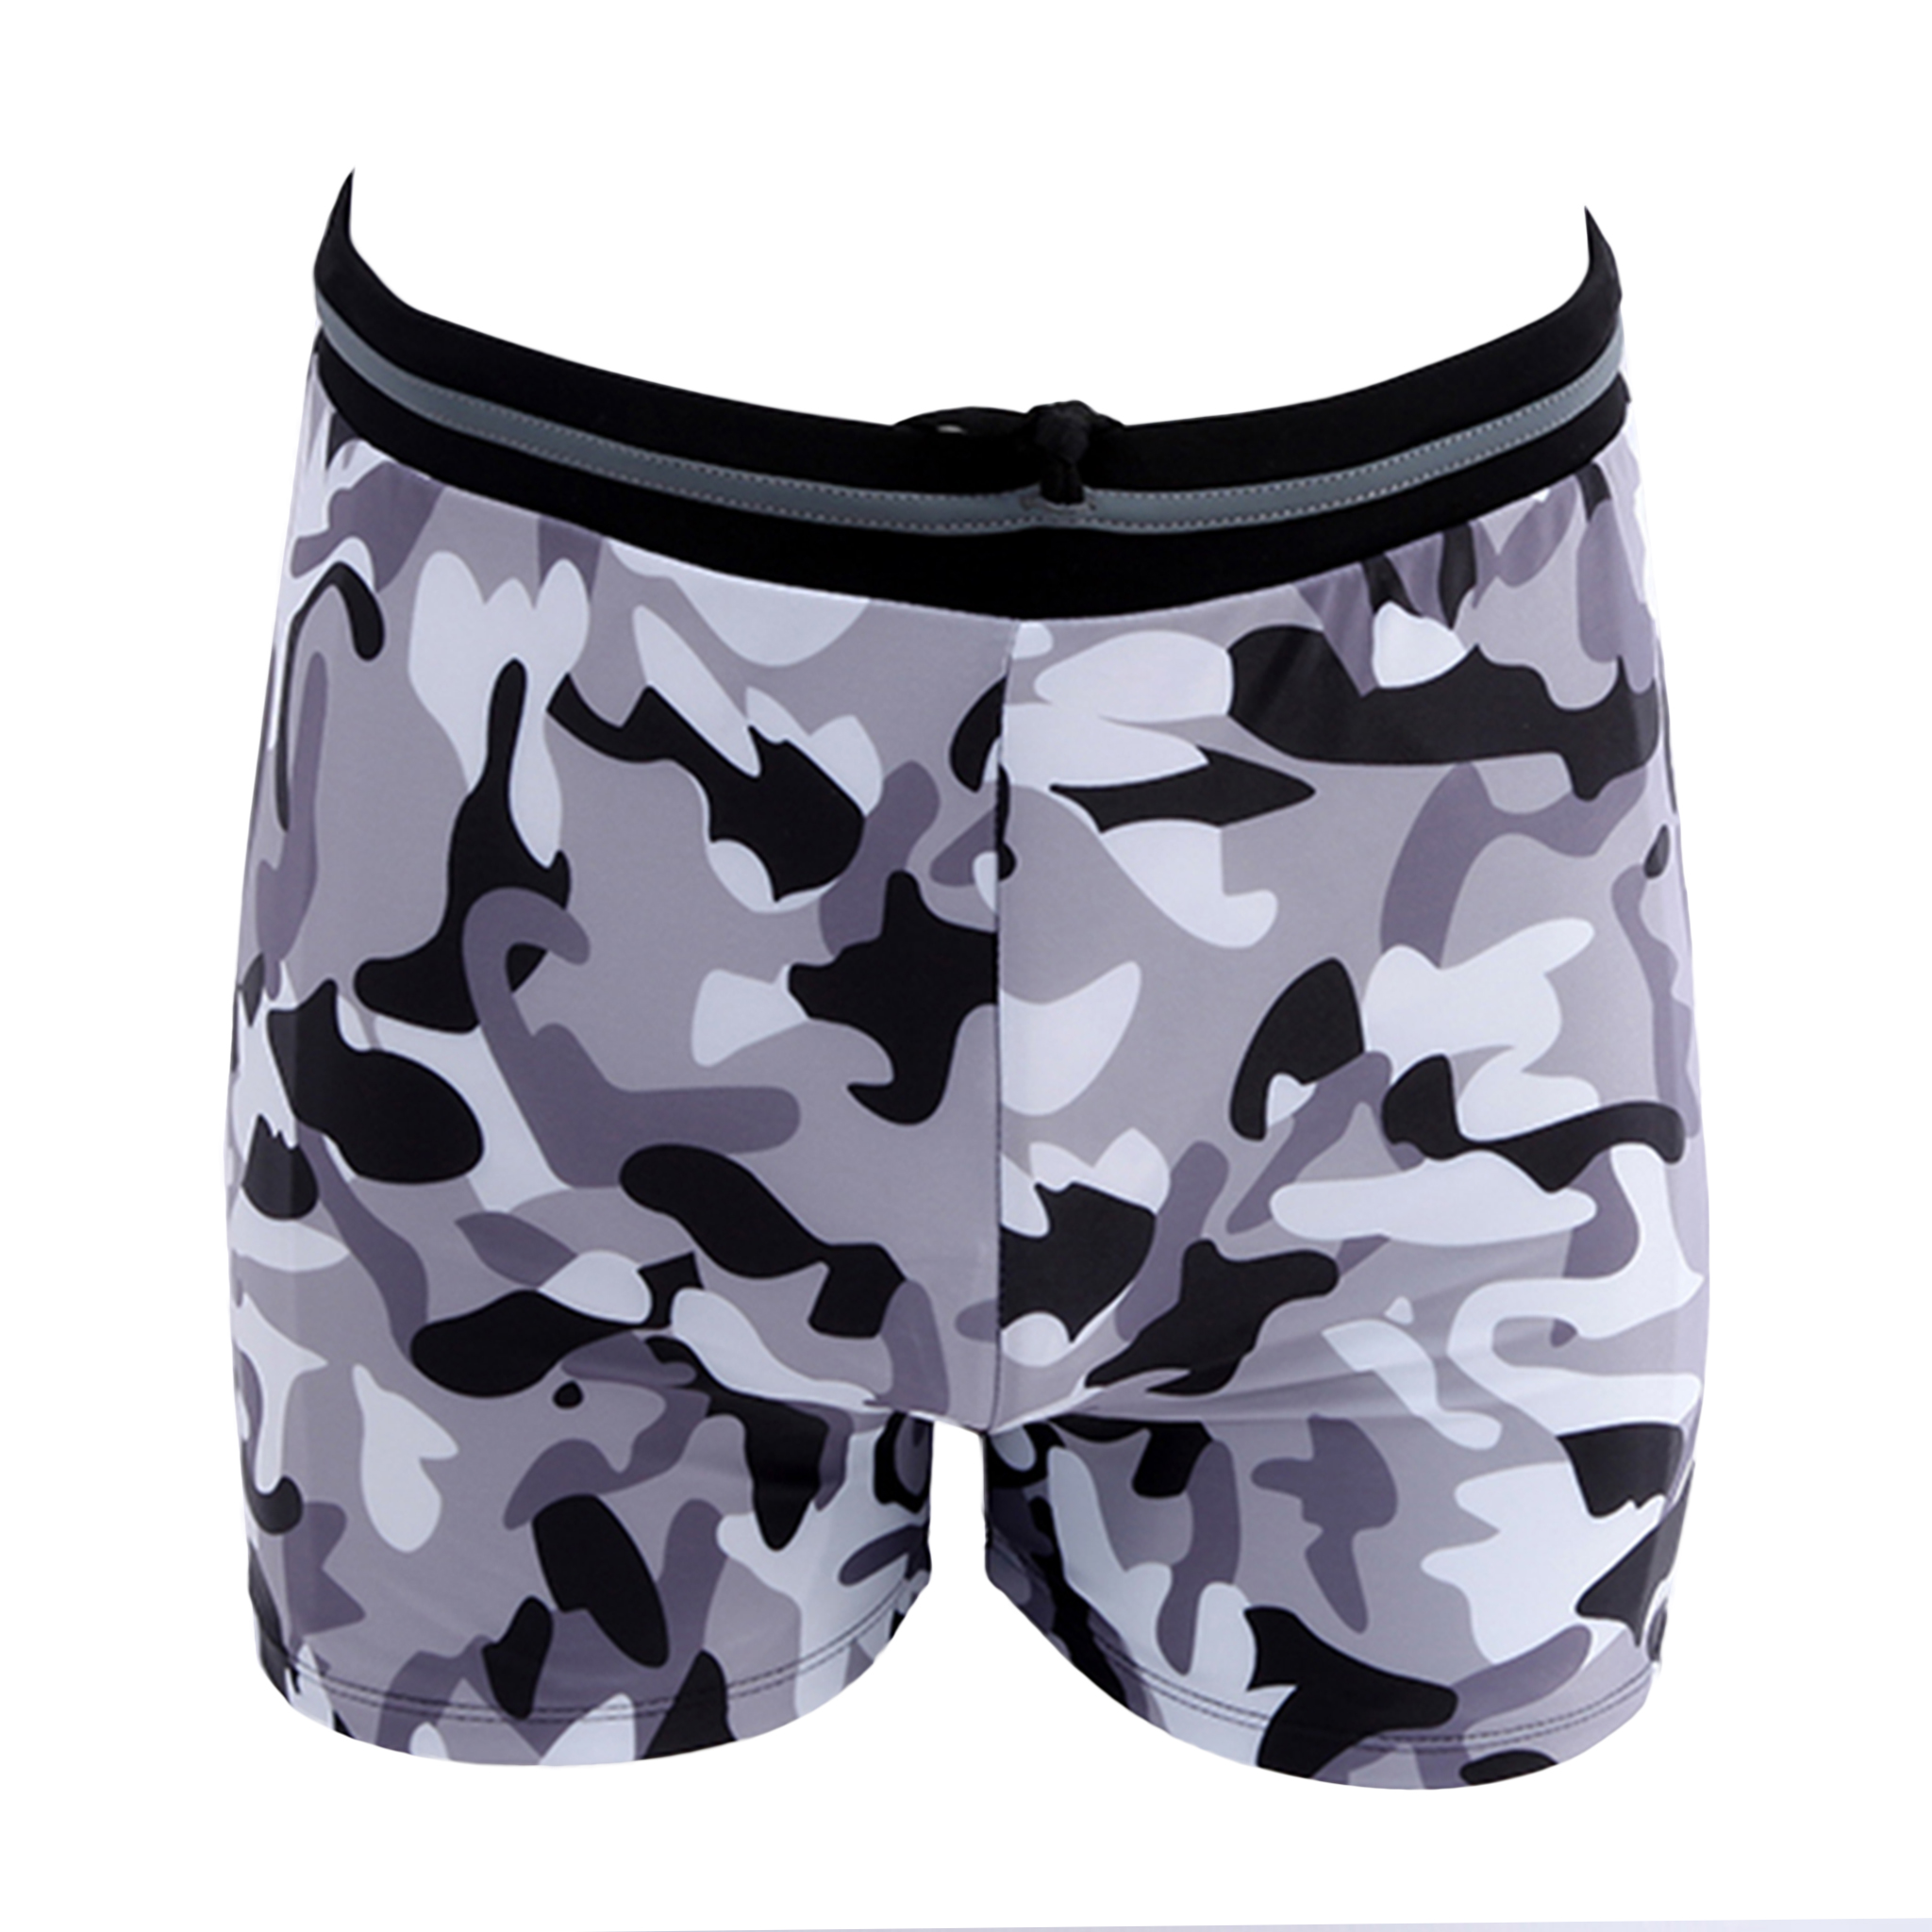 2016 camouflage swimming trunks Professional Swimwear Men's Sport Boxer Swimsuit Beach Wear Briefs Man's Surfing shorts(China (Mainland))